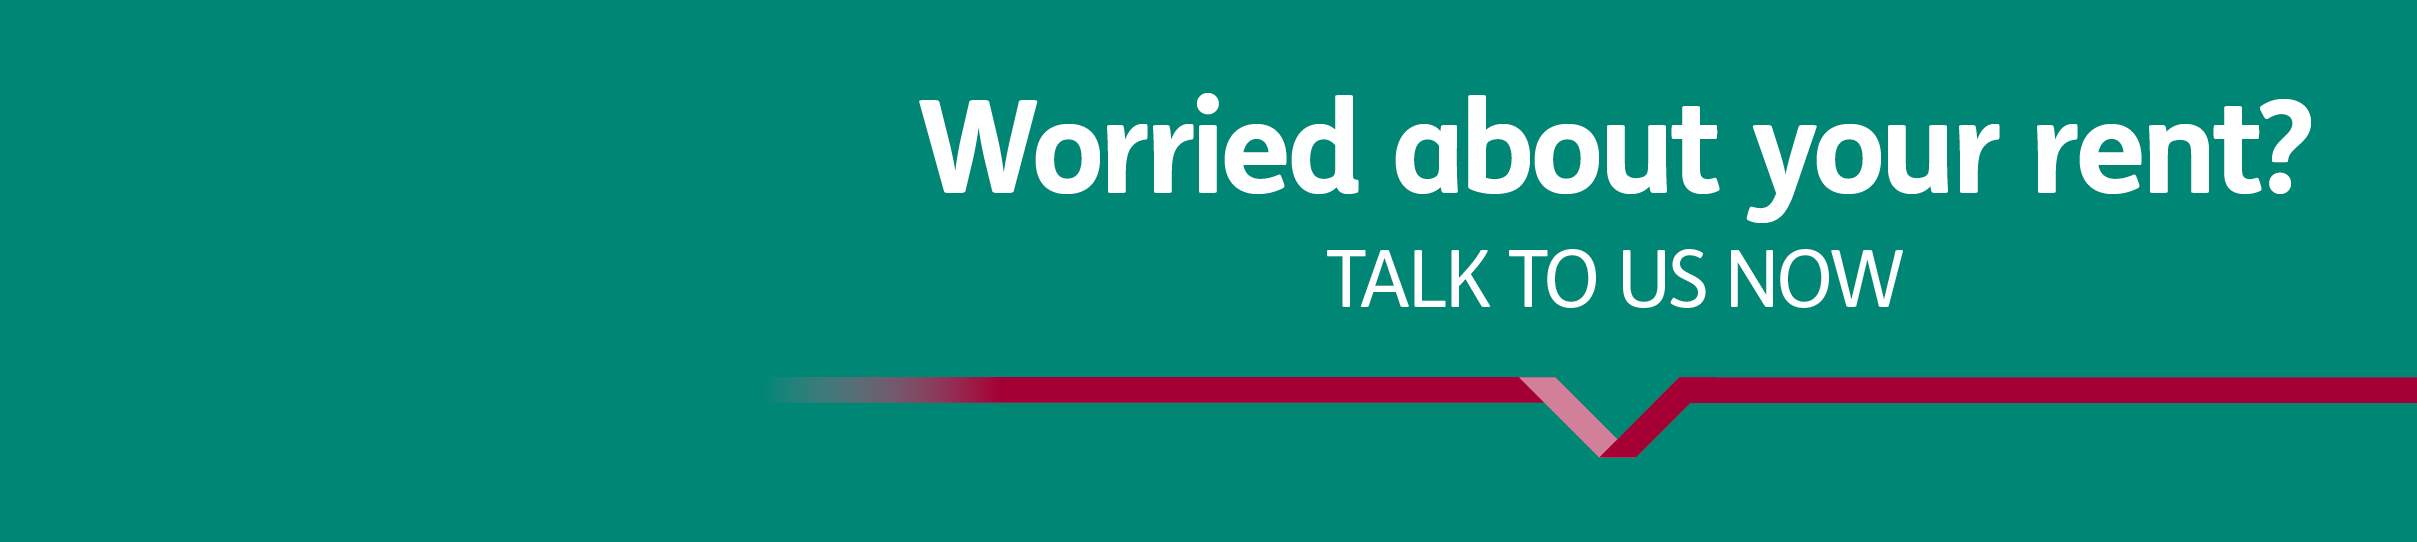 Worried about your rent - talk to us now -